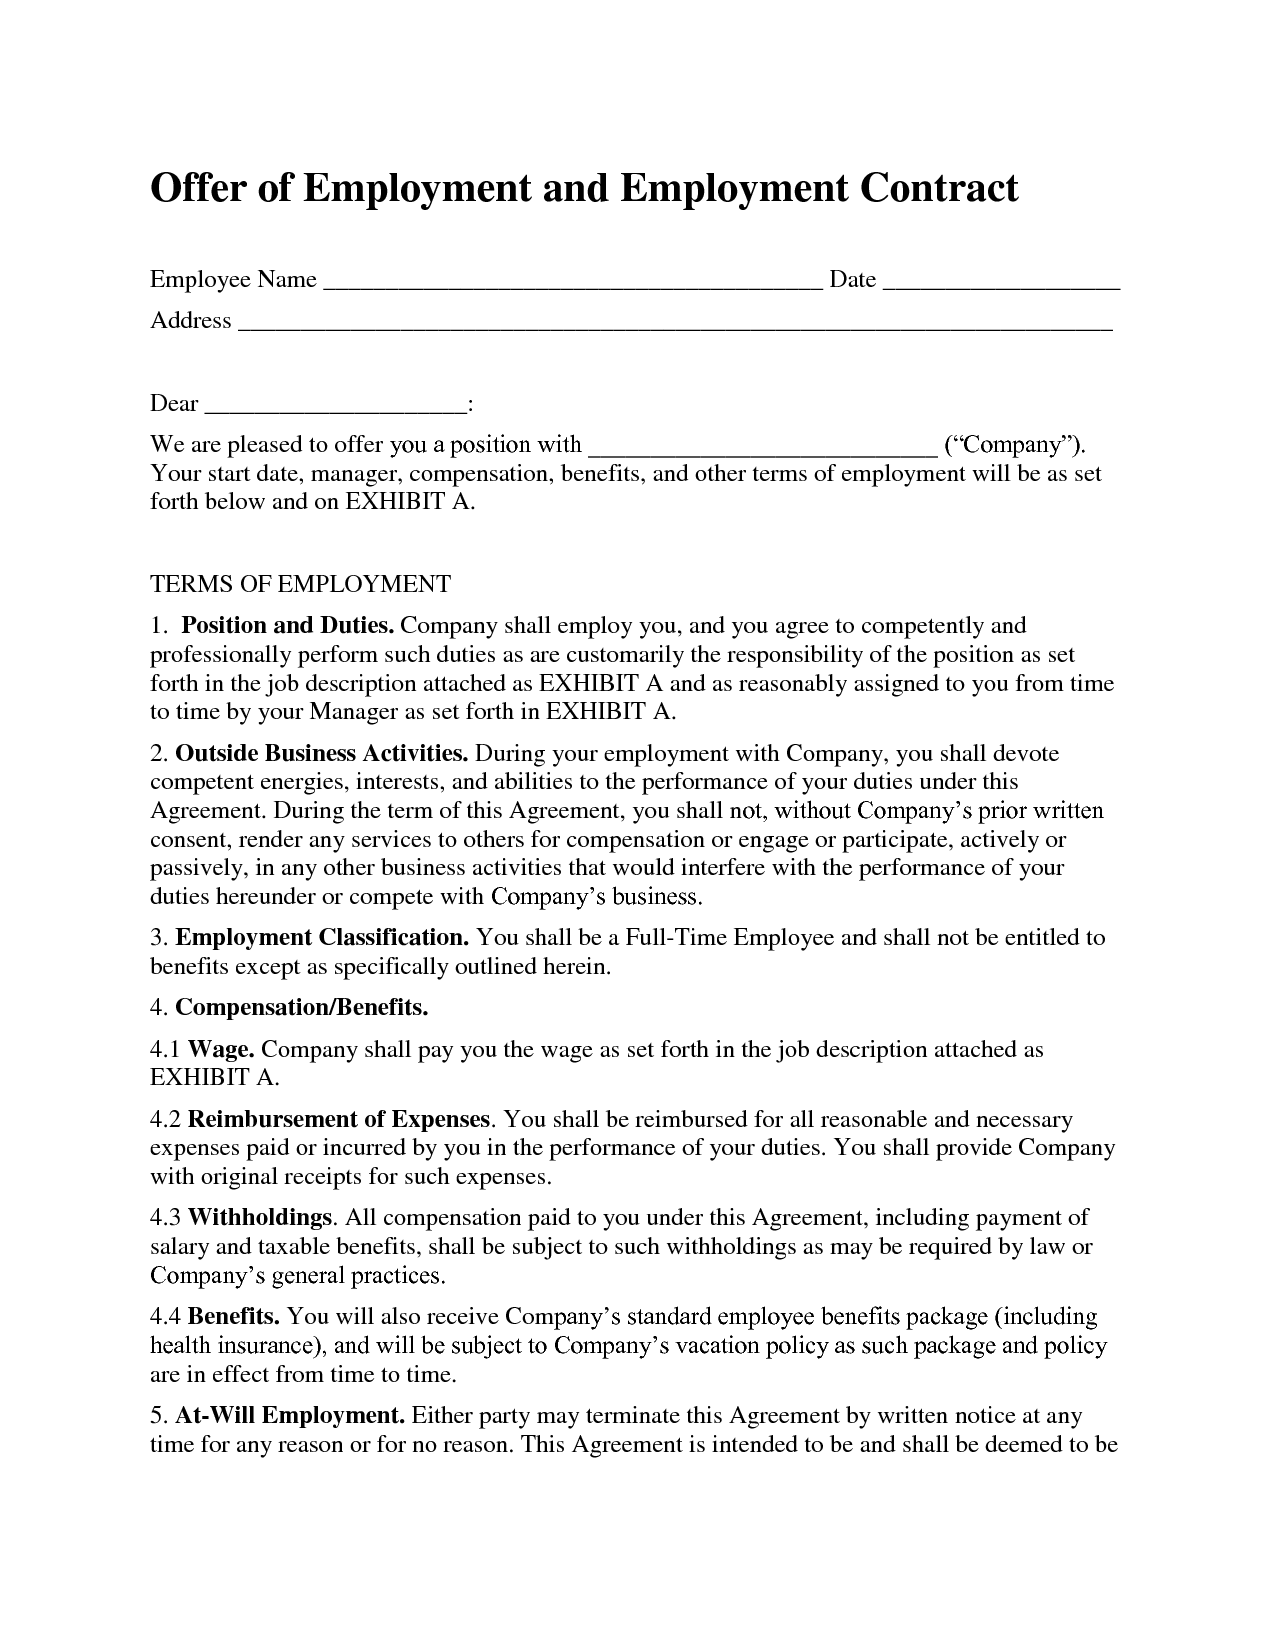 Best Resumes And Templates For Your Business   Ggec.co  Employment Contract Free Template